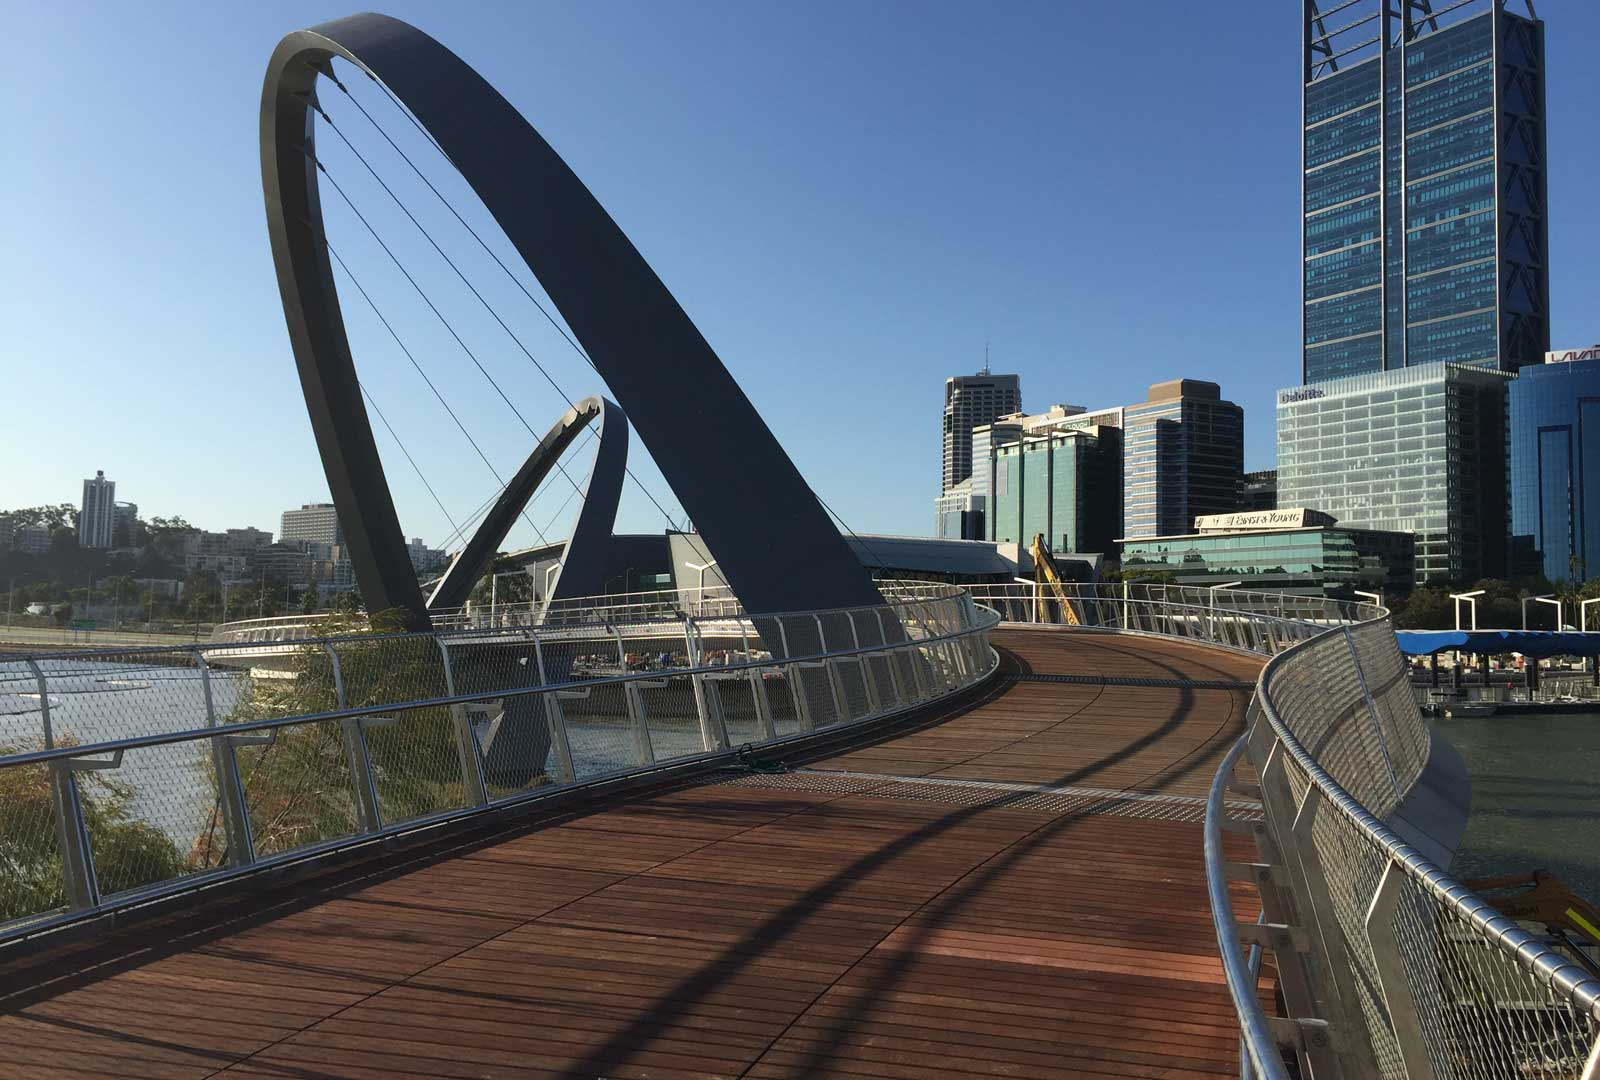 Elizabeth Quay Bridge